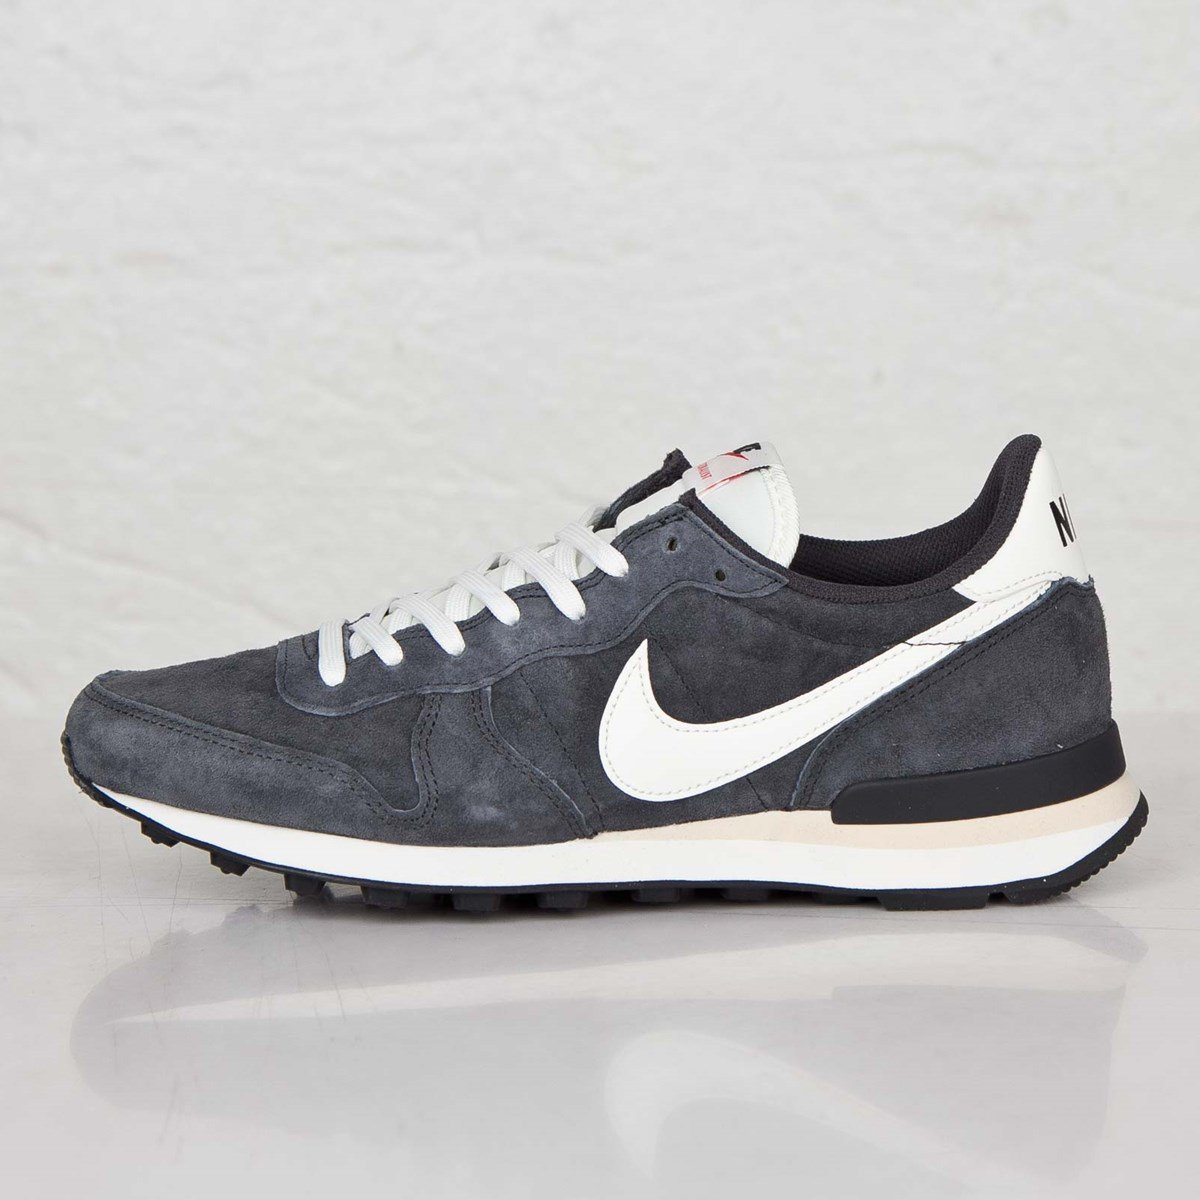 outlet store e5562 28c3f Nike Internationalist PGS Leather - 705017-001 - Sneakersnstuff   sneakers    streetwear online since 1999